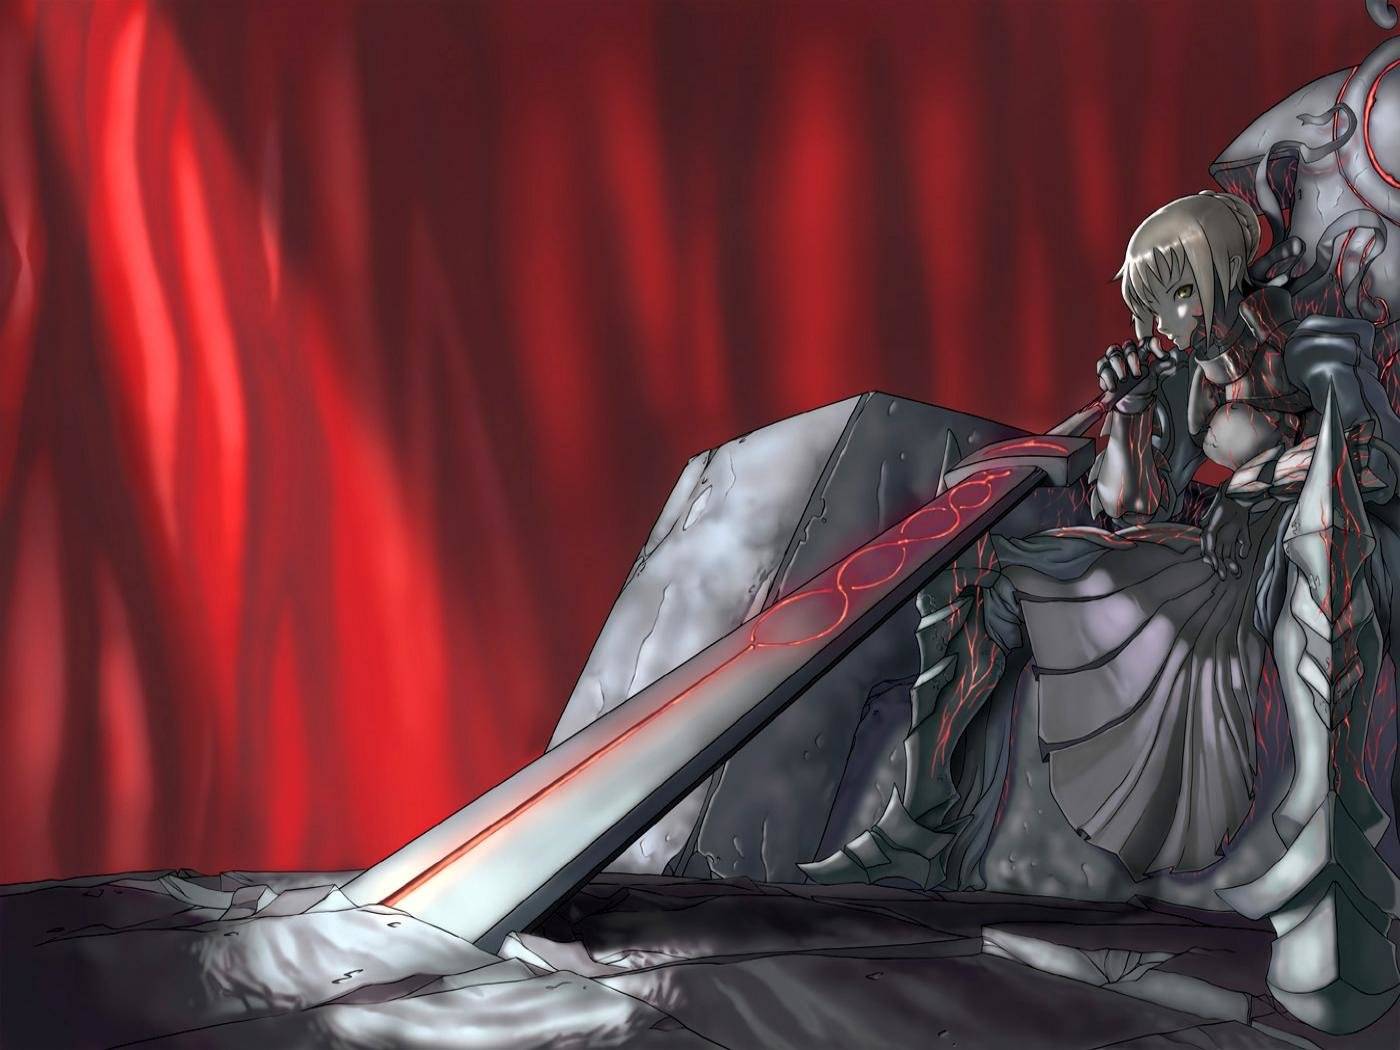 Download hd 1400x1050 Saber Alter PC wallpaper ID:468933 for free